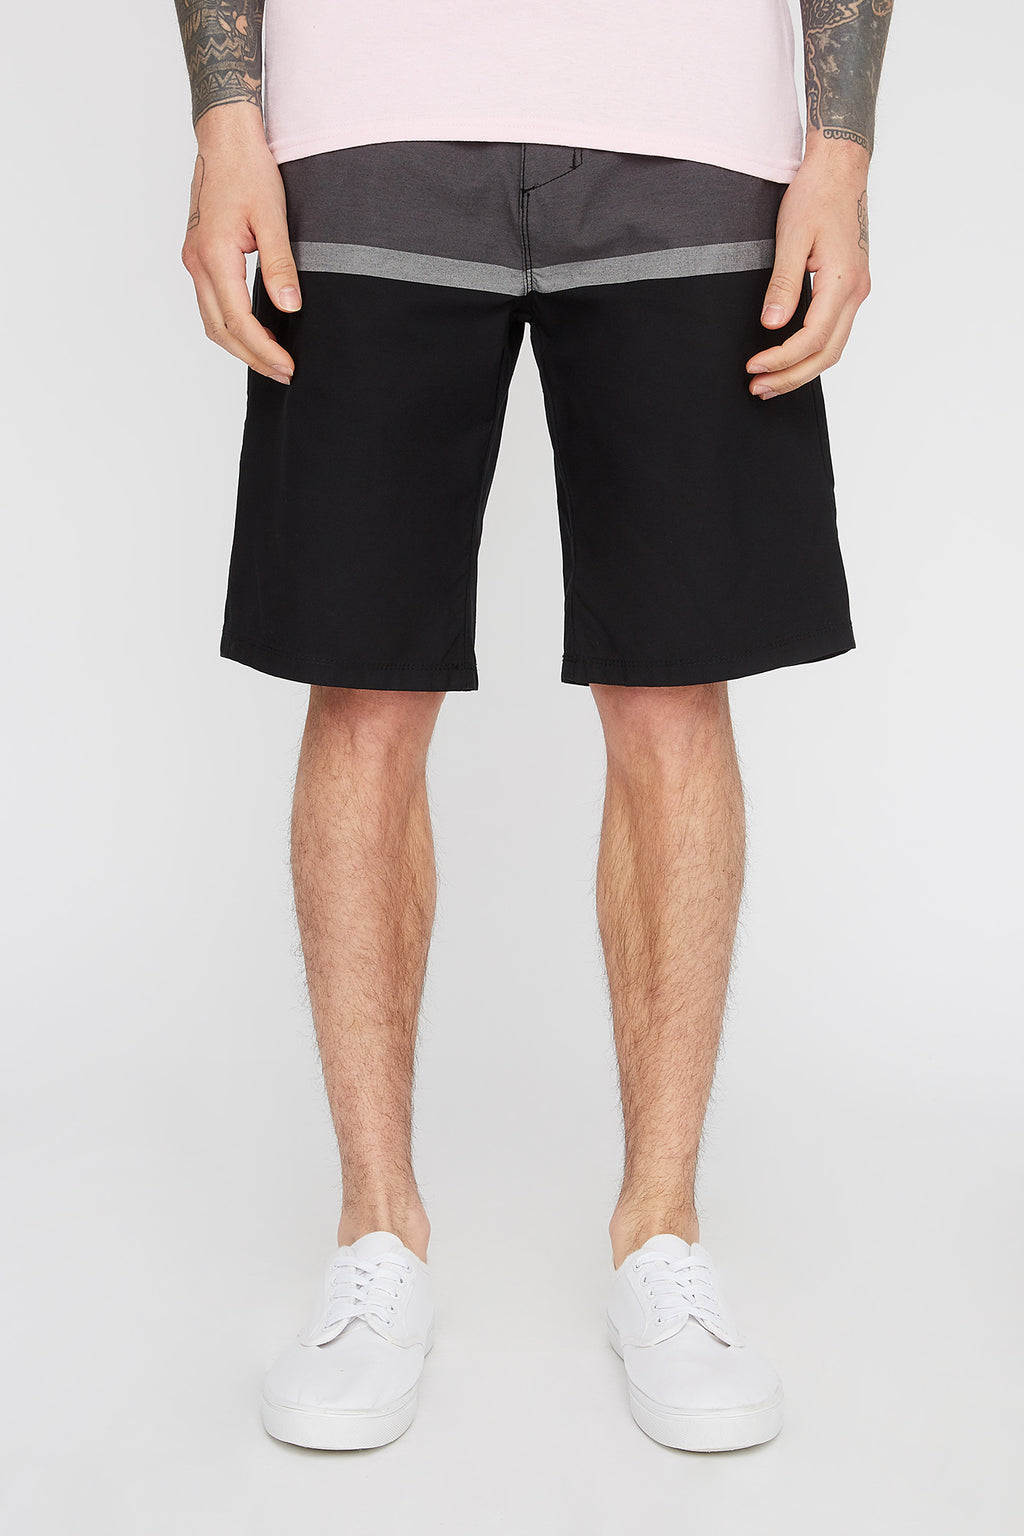 West49 Mens Colour Block Skate Shorts